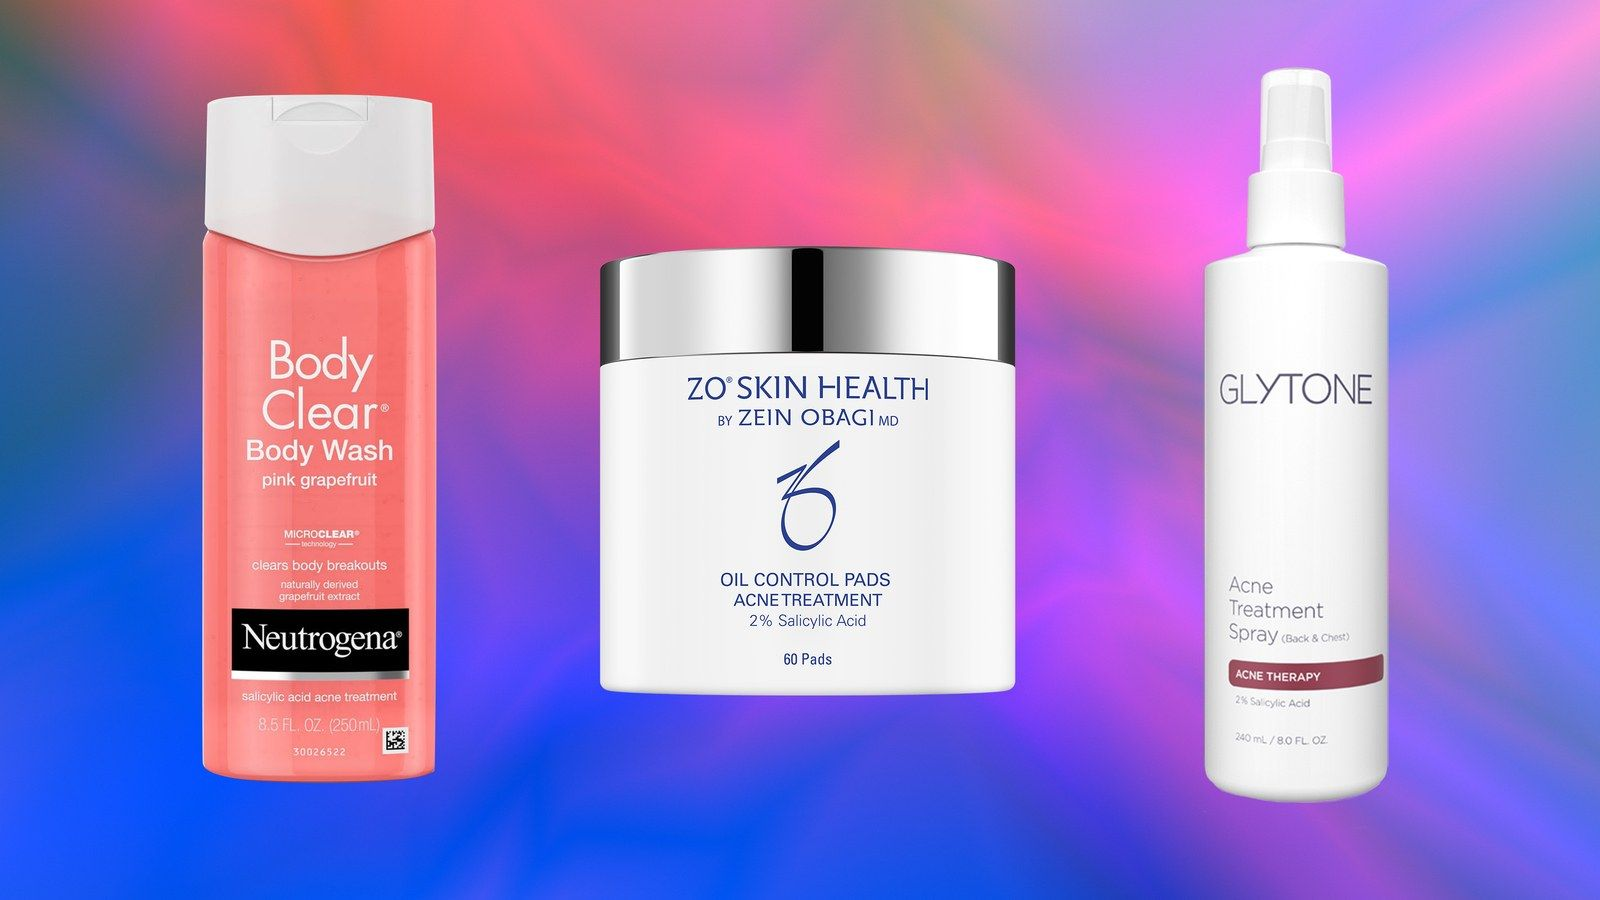 The Best Skin Care Products For Body Acne Expert Recommendations Https Fabriciofashion Com The Best Skin Body Acne Acne Treatment Skin Cleanser Products